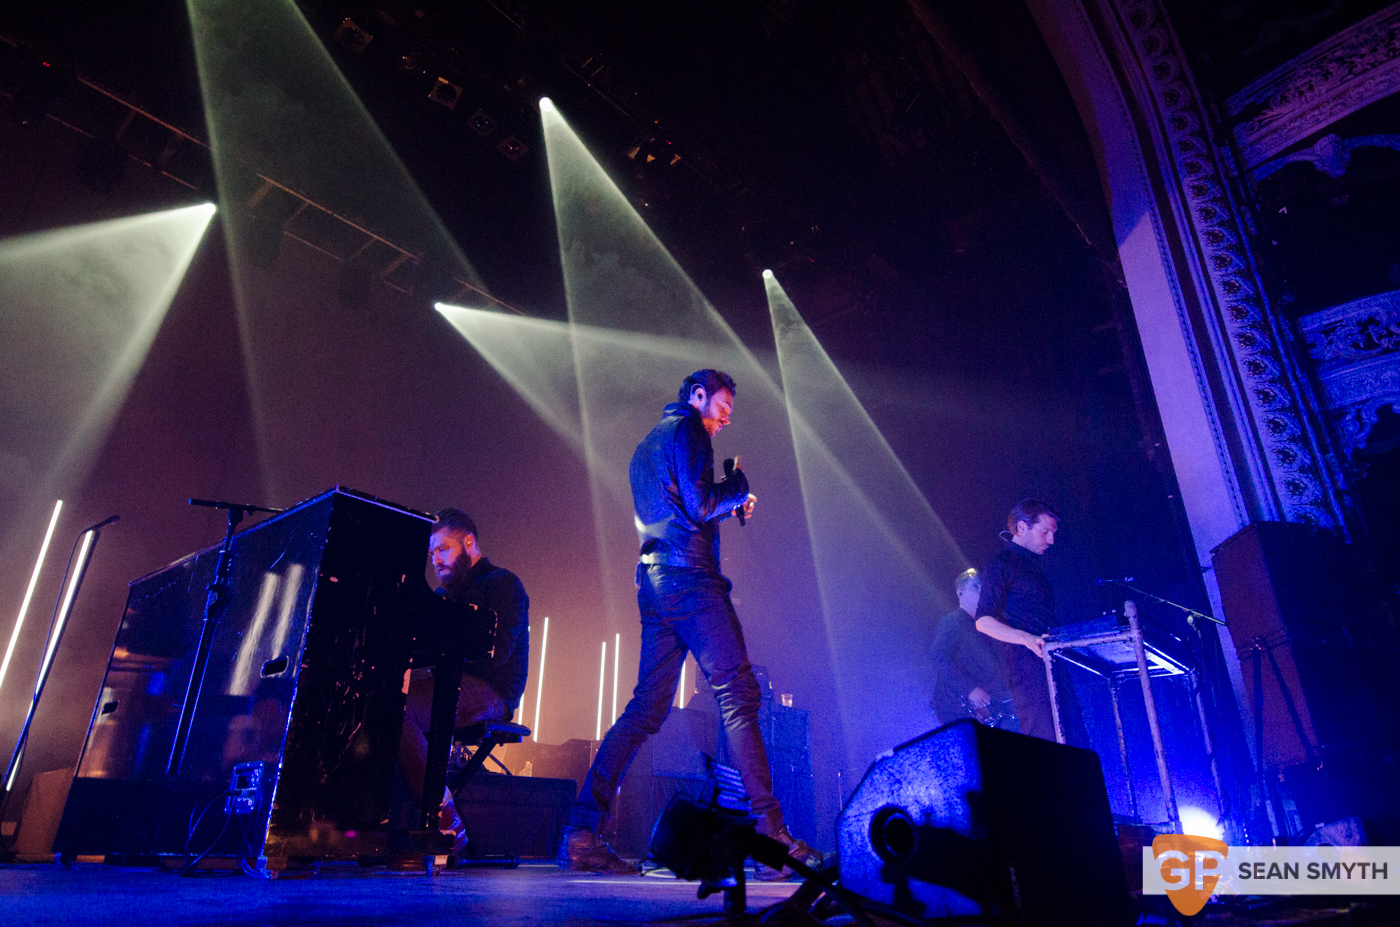 editors-at-the-olympia-theatre-by-sean-smyth-10-10-15-2-of-28_21902549978_o